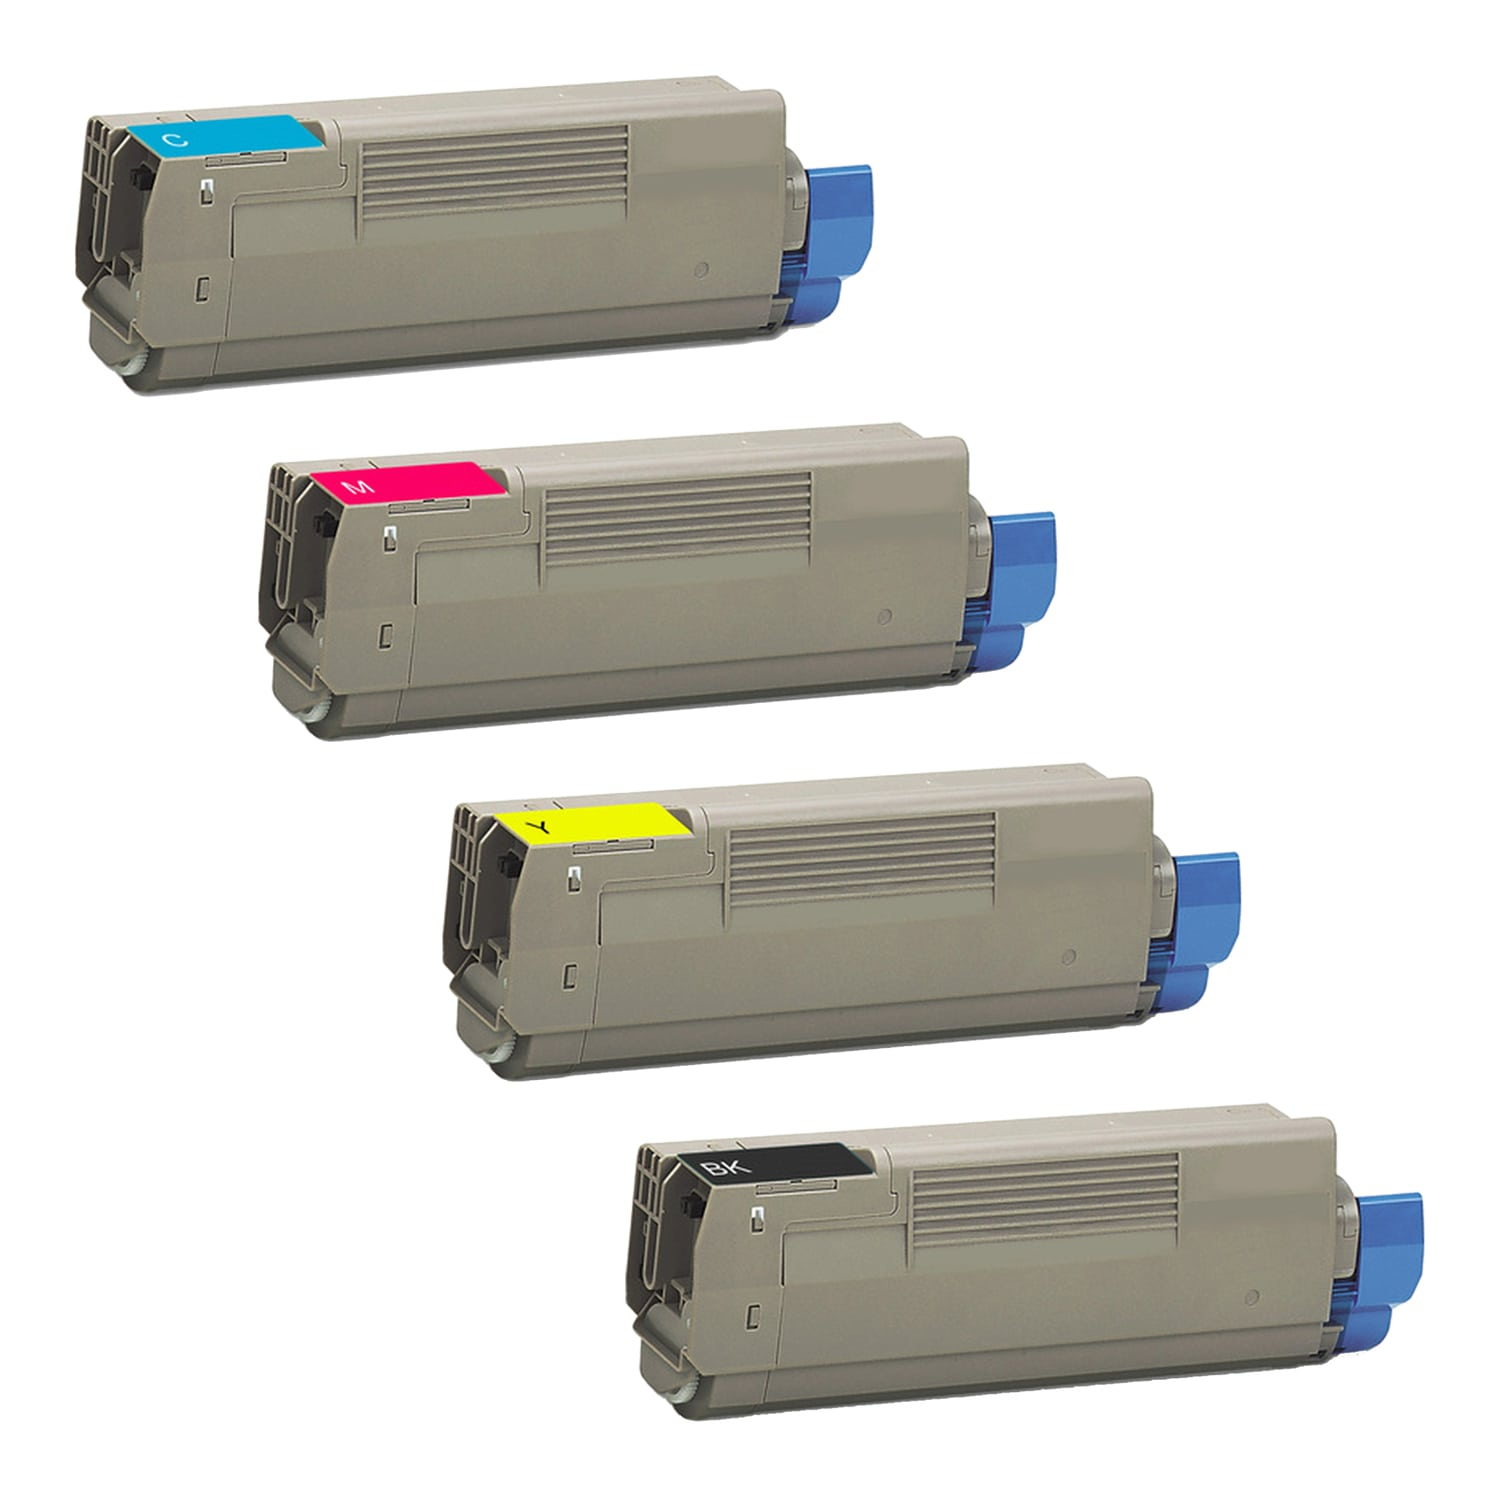 Remanufactured Okidata C610 Toner Pack - 4 Cartridges